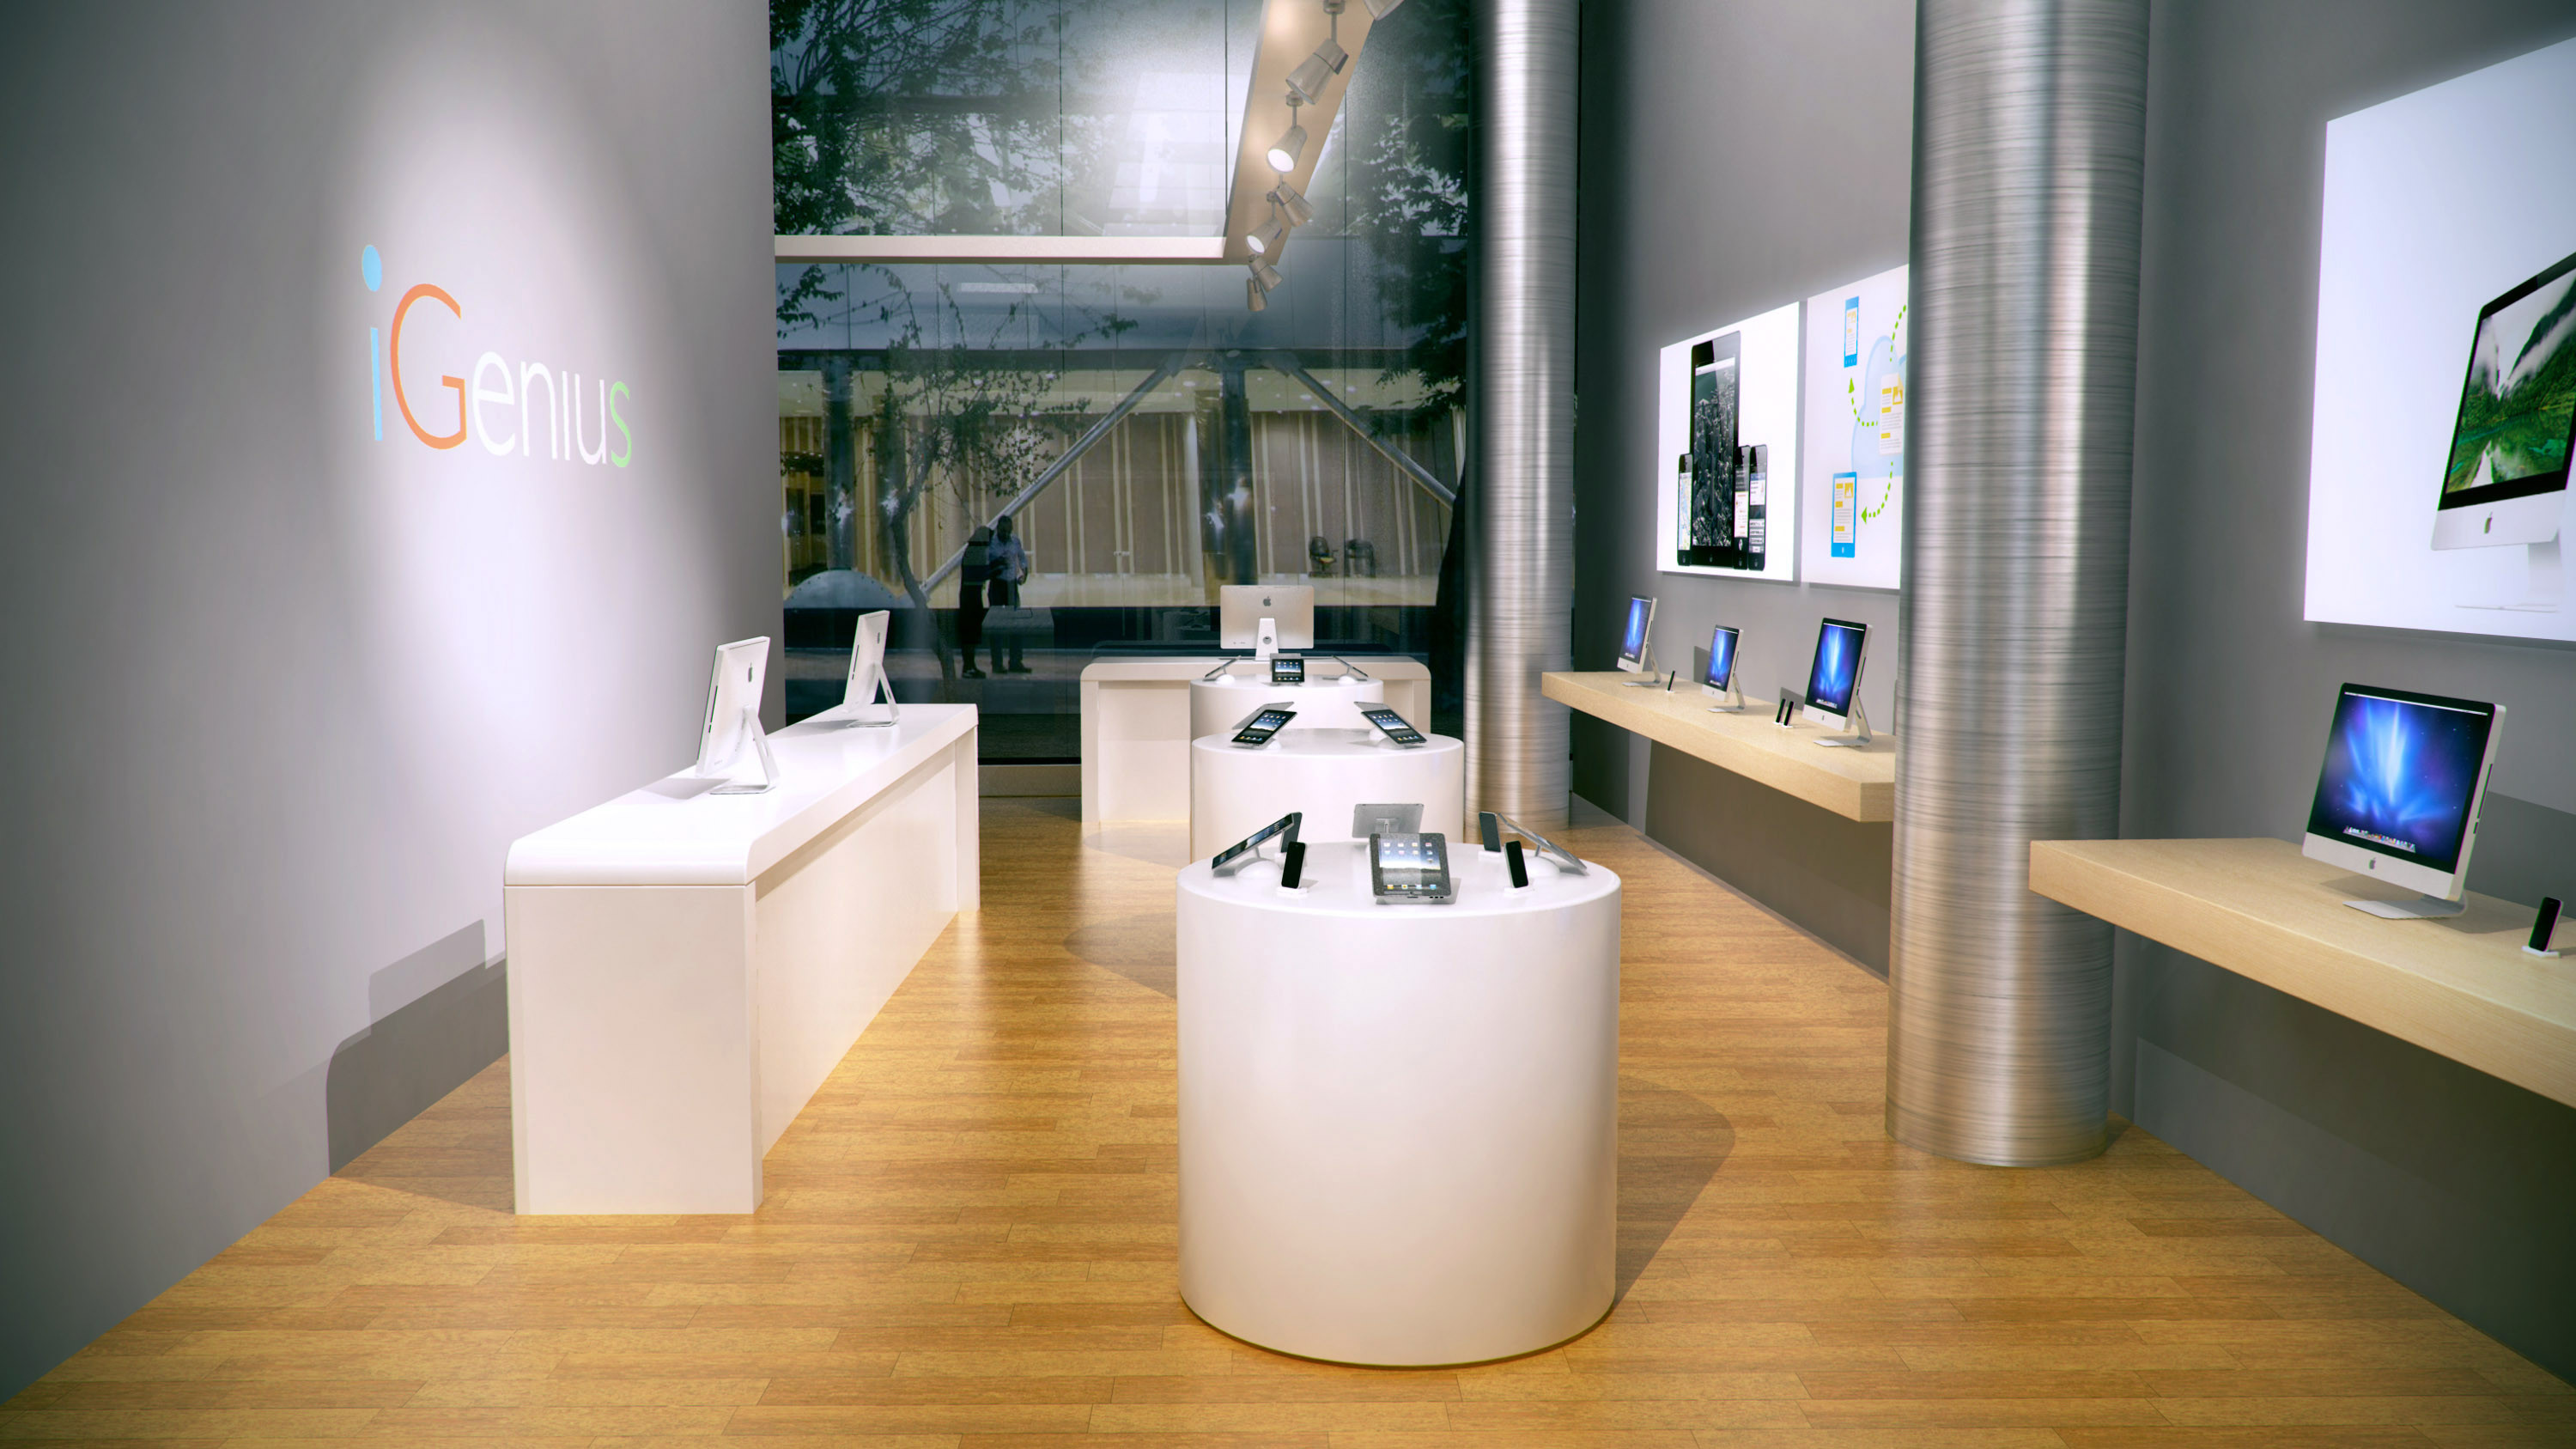 iGenius retail store, interior